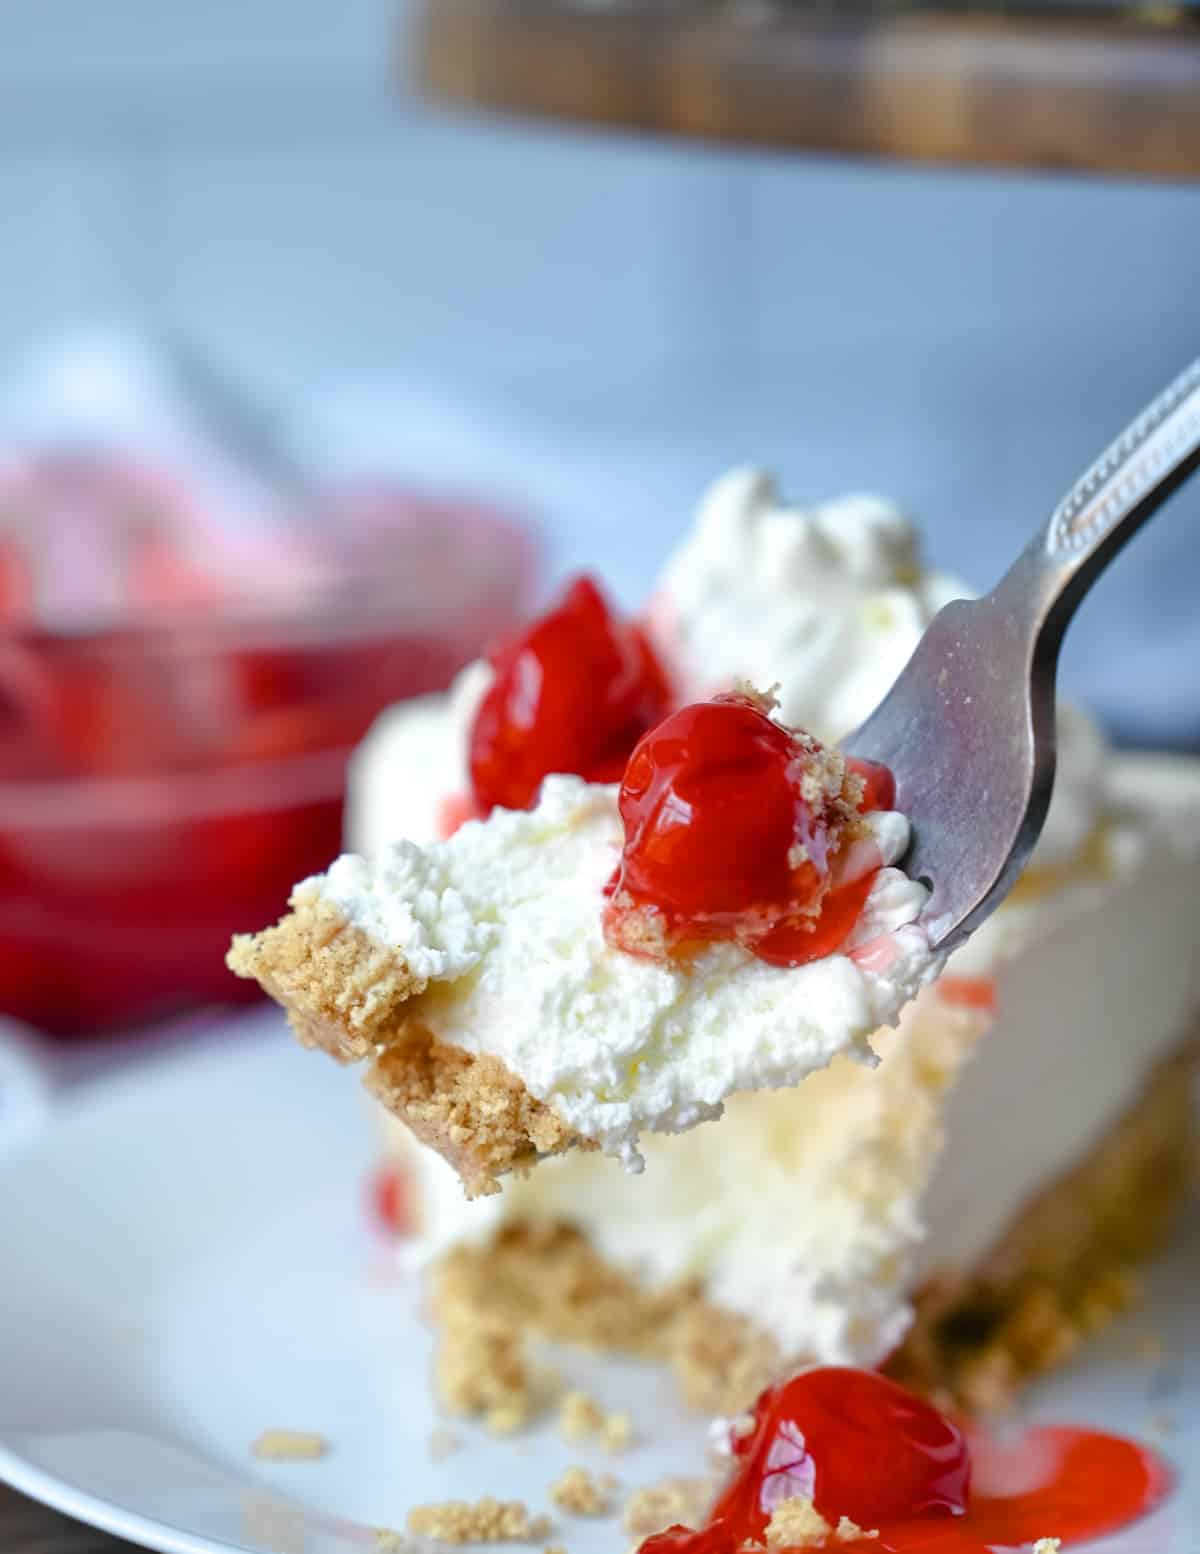 A fork picking up a bite of no bake cheesecake.